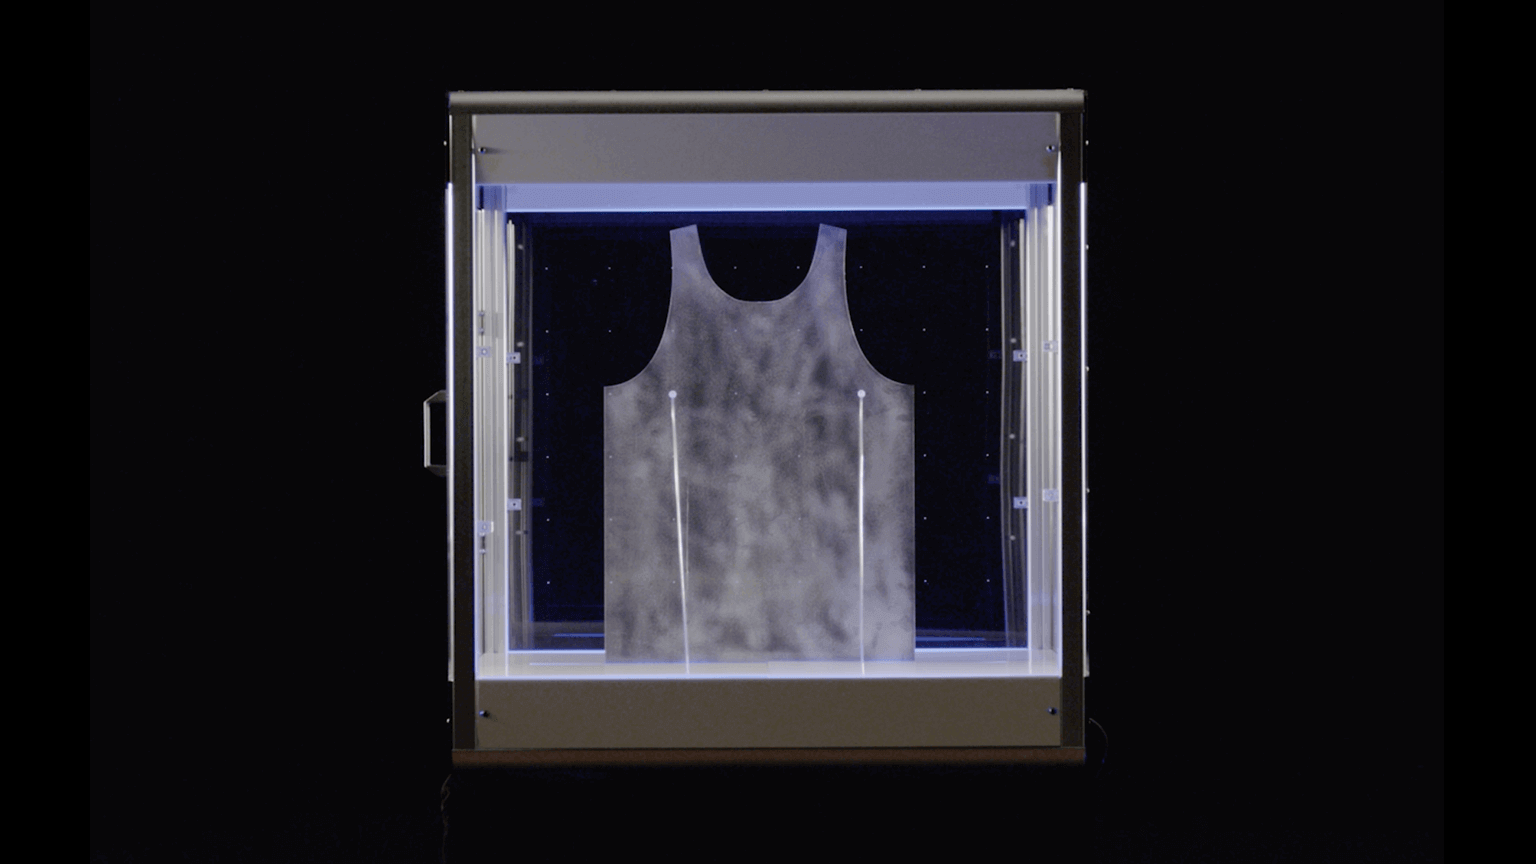 Electroloom 3D Fabric Printer Says Goodbye | All3DP